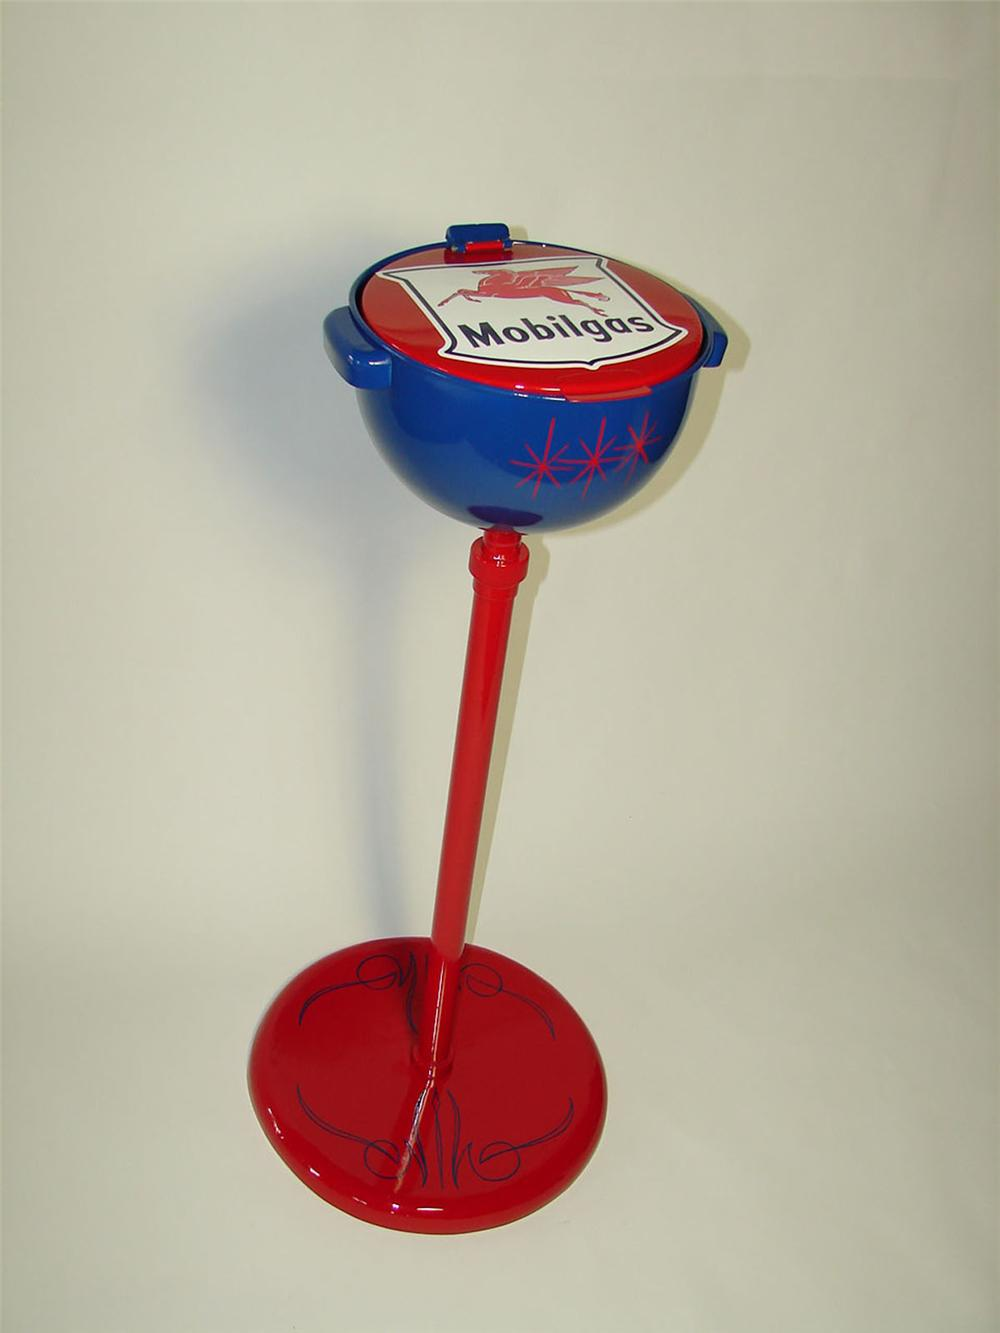 Tremendous 1950s Mobilgas service department floor model oil collector on stand. - Front 3/4 - 108528